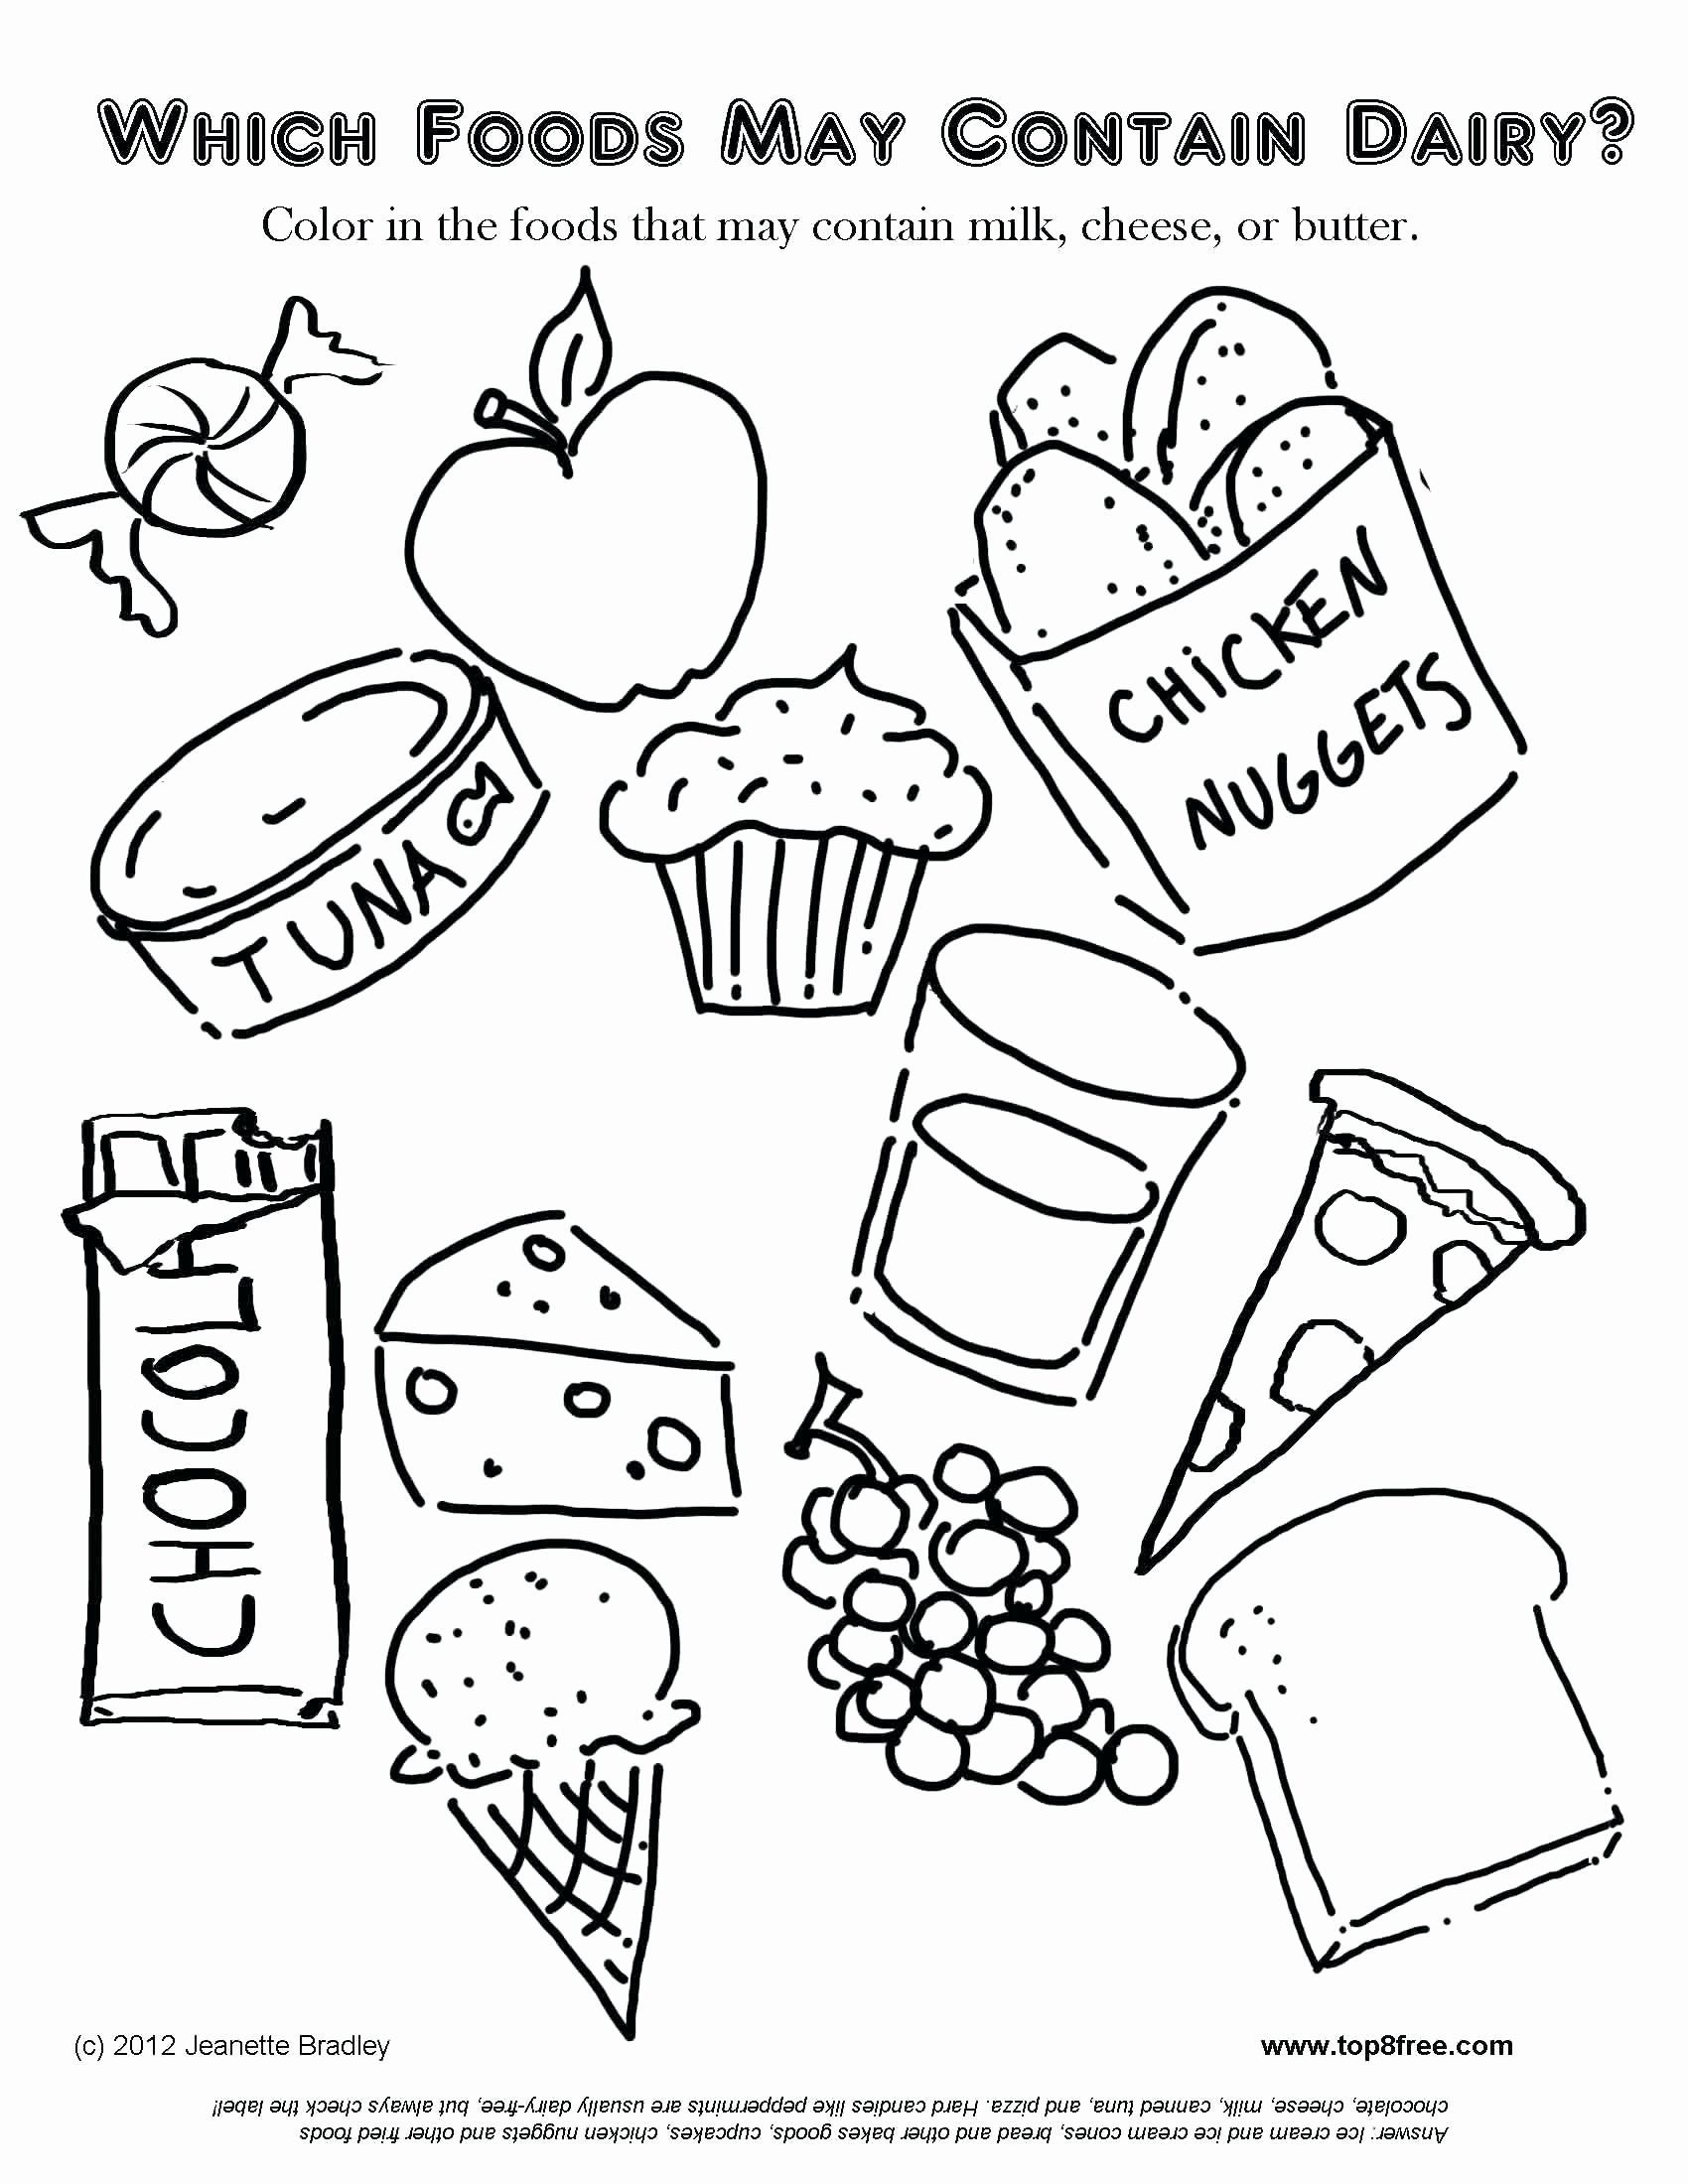 Chicken Nugget Coloring Pages Luxury Food Pyramid Coloring Sheet